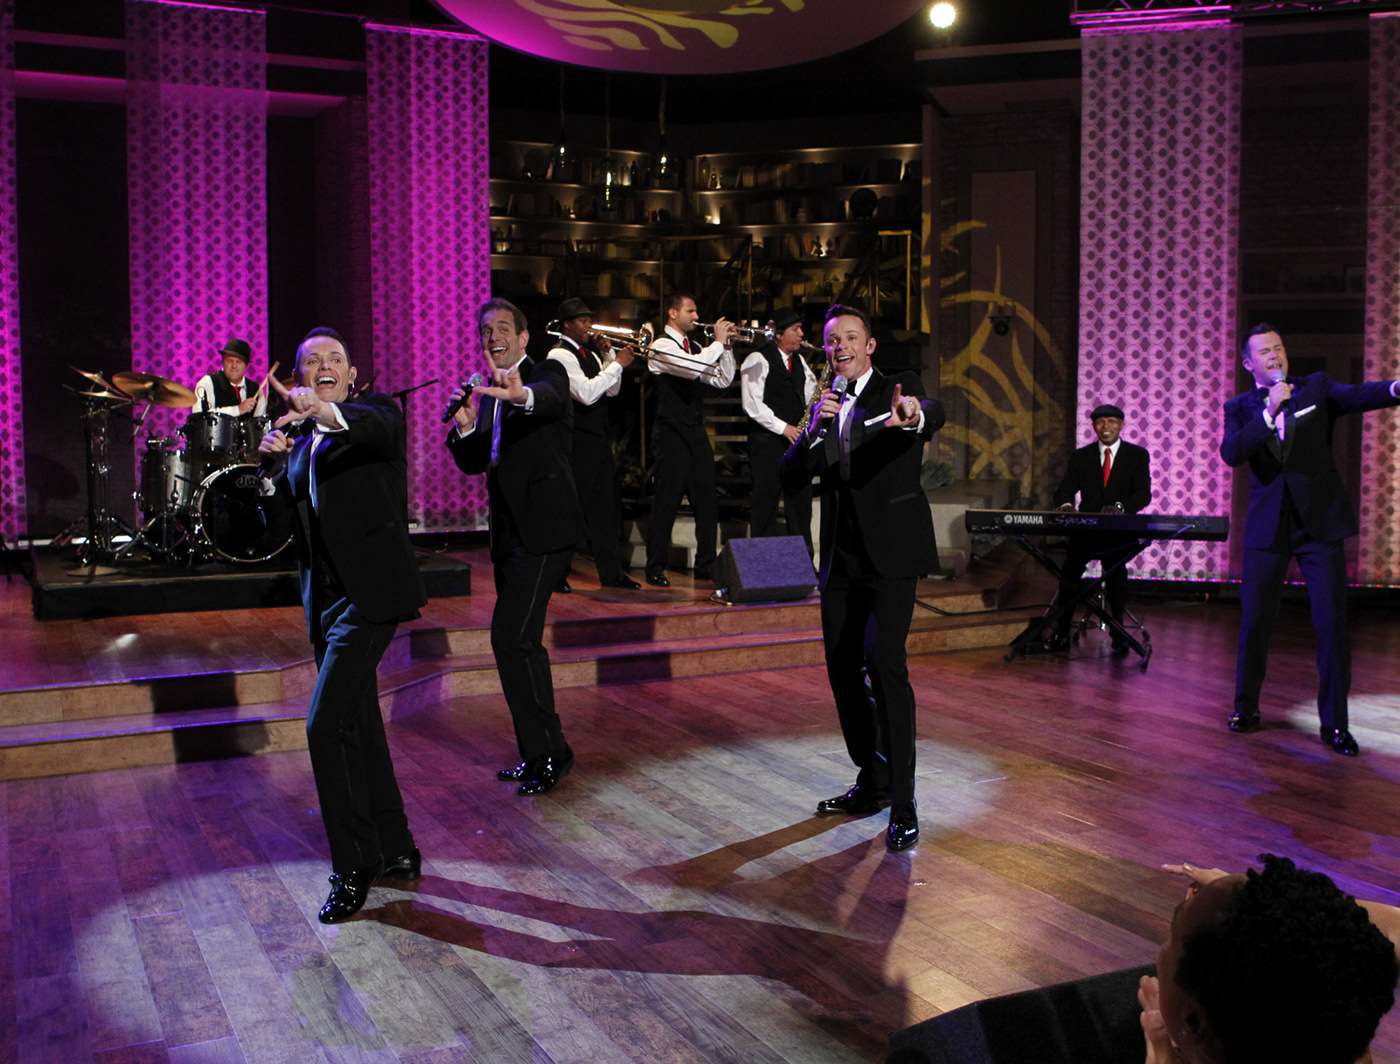 Australian pop group Human Nature performs on The Talk